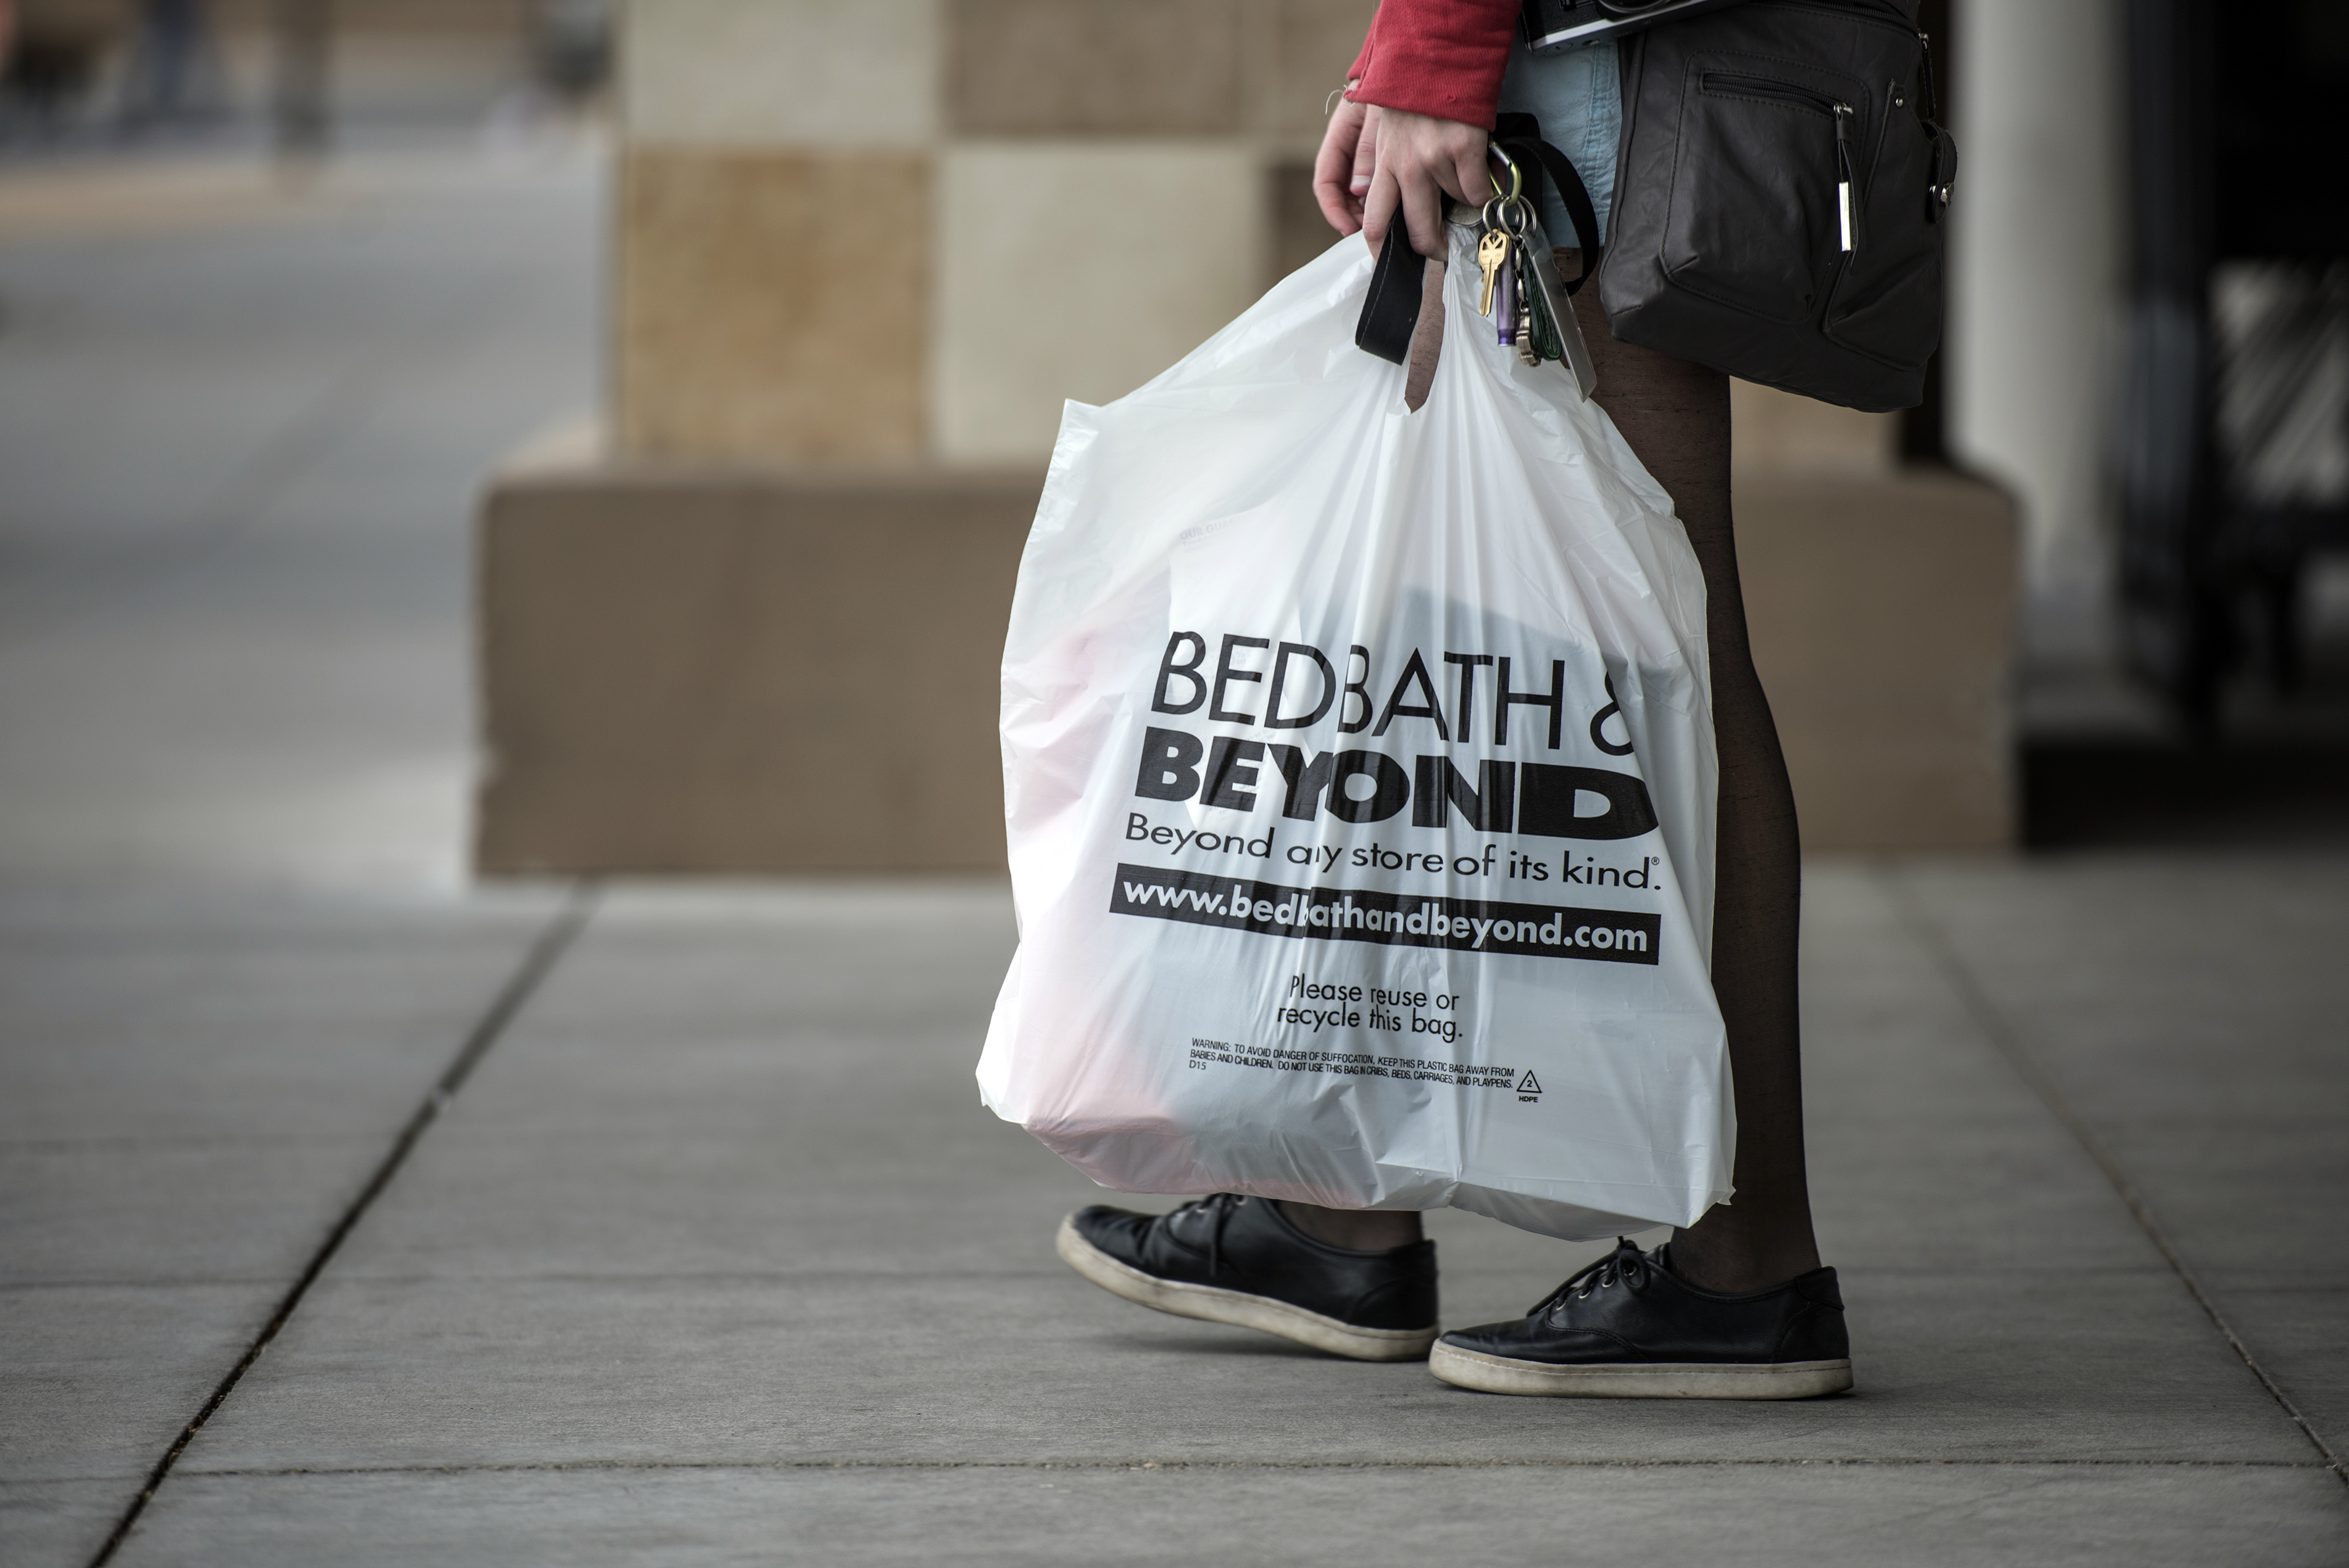 A Bed Bath & Beyond Inc. Store Ahead Of Earnings Figures